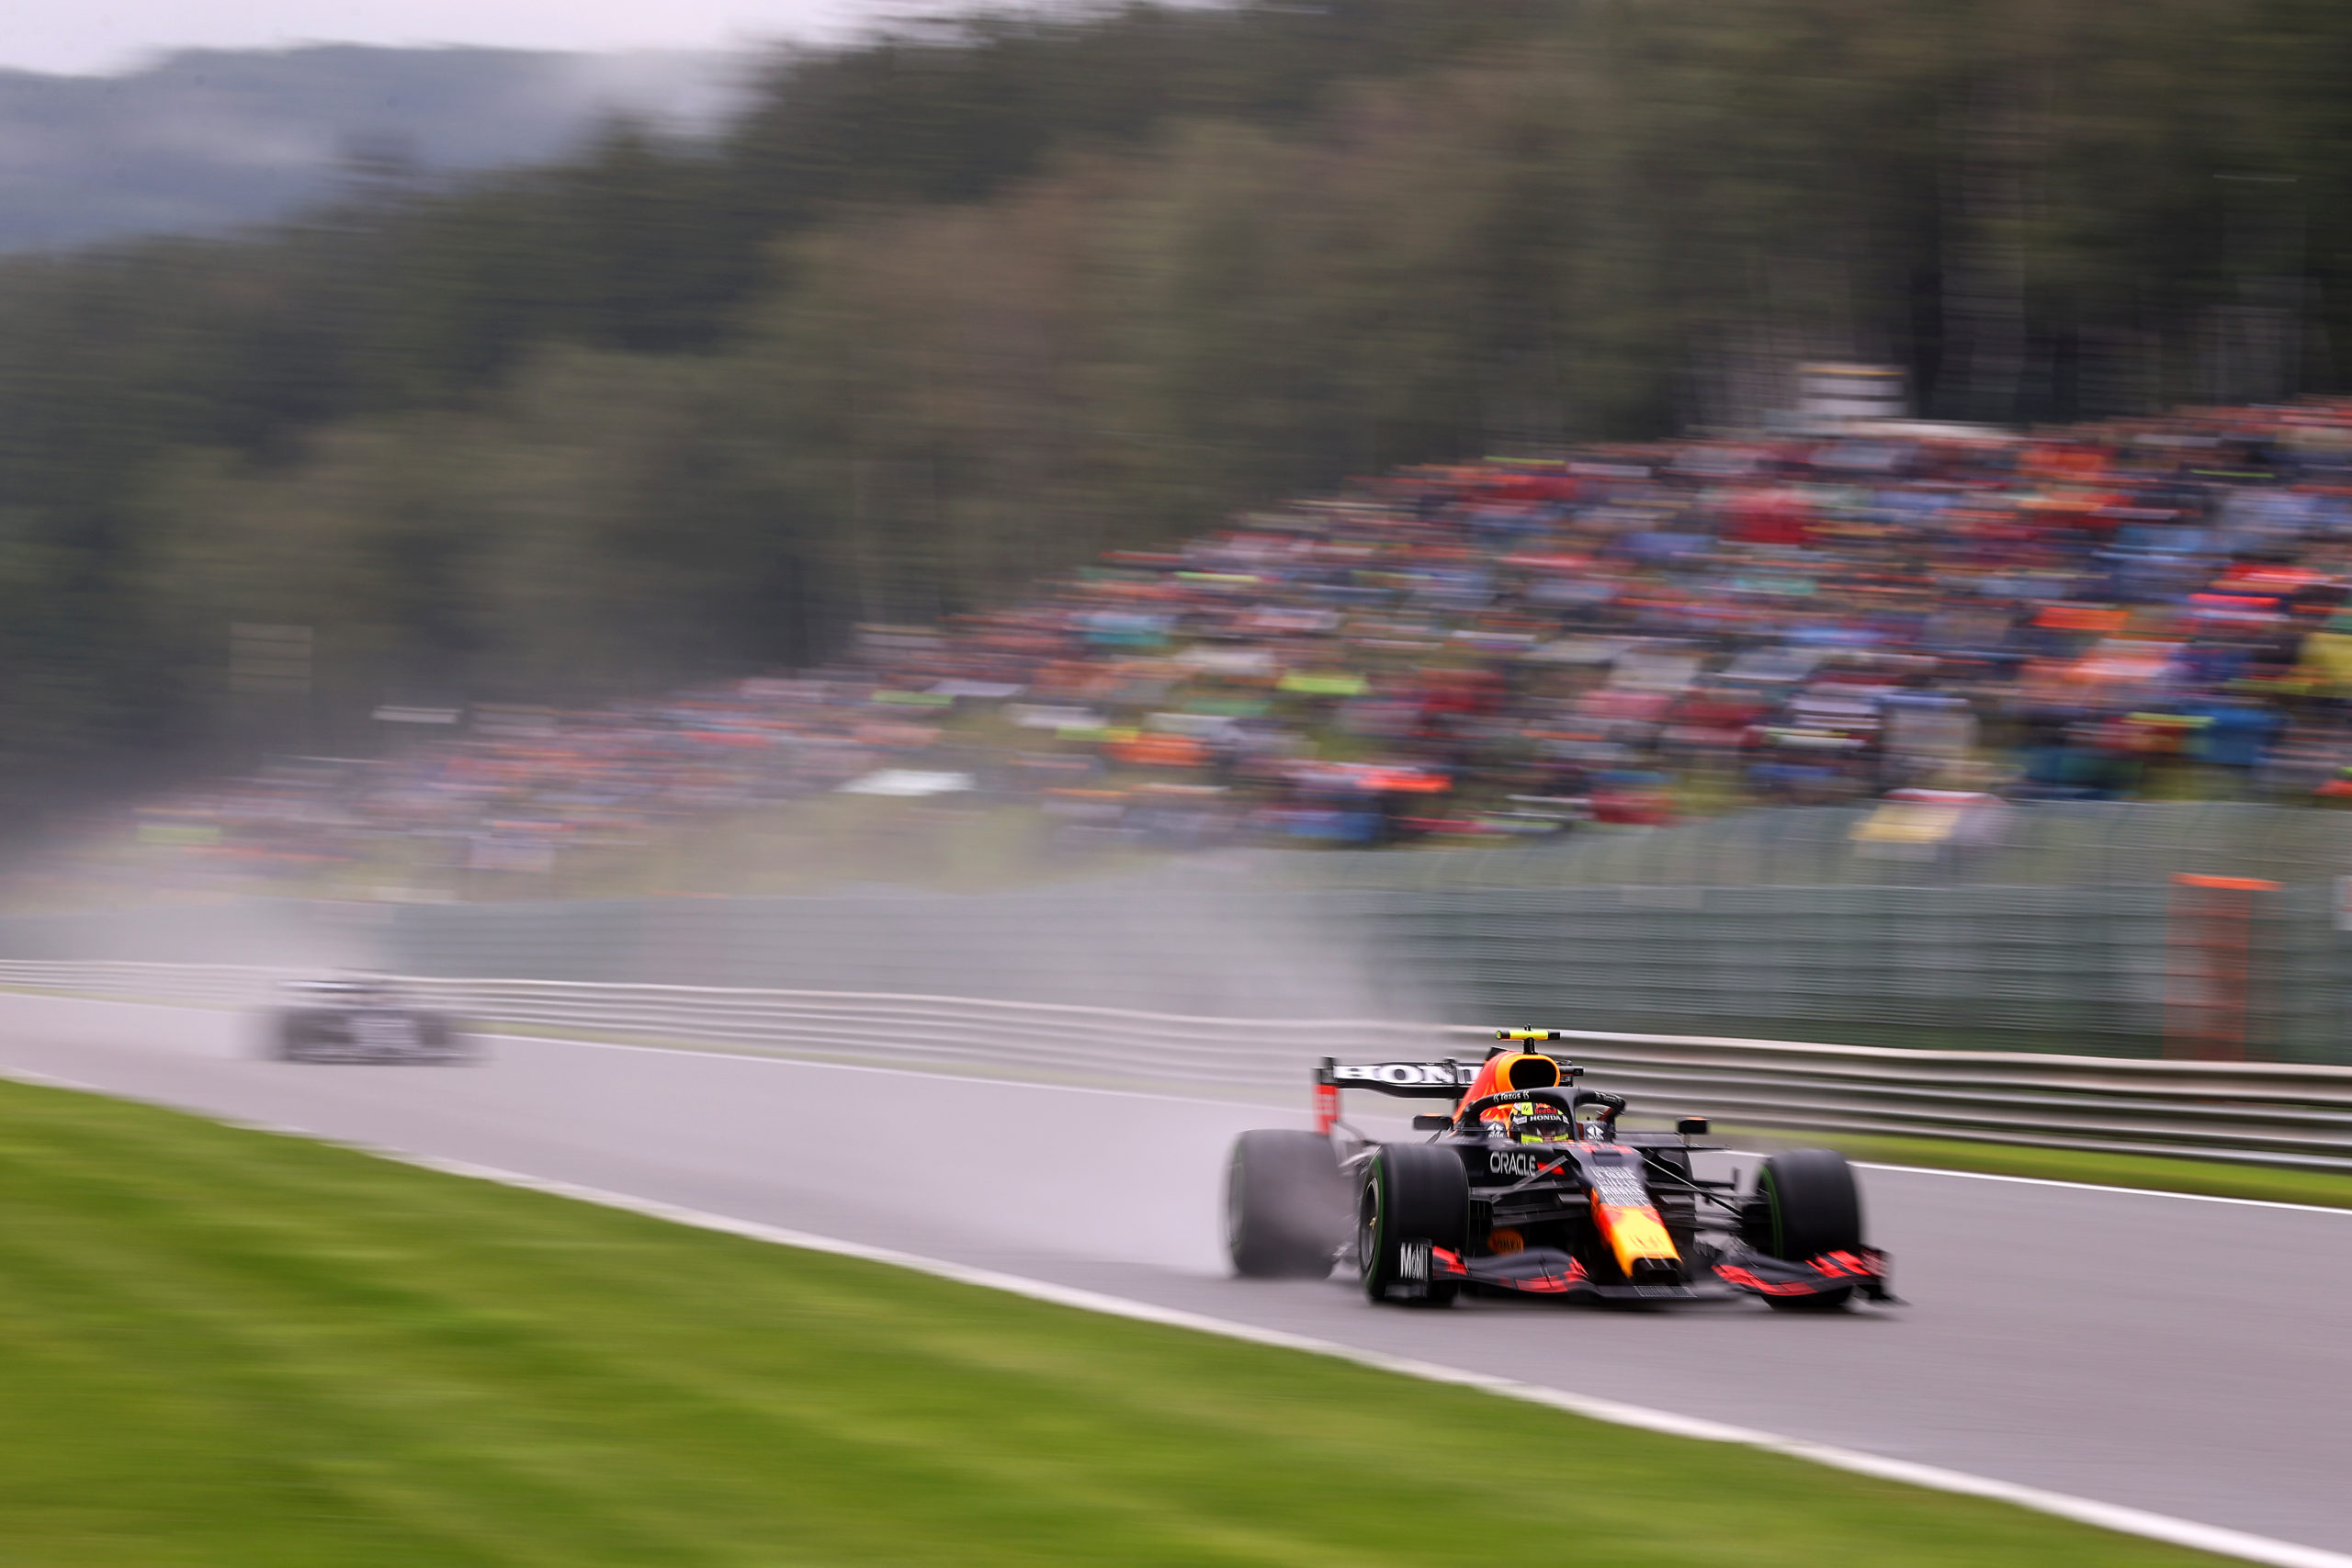 SPA, BELGIUM - AUGUST 28: Sergio Perez of Mexico driving the (11) Red Bull Racing RB16B Honda during final practice ahead of the F1 Grand Prix of Belgium at Circuit de Spa-Francorchamps on August 28, 2021 in Spa, Belgium. (Photo by Lars Baron/Getty Images) // Getty Images / Red Bull Content Pool  // SI202108280120 // Usage for editorial use only //